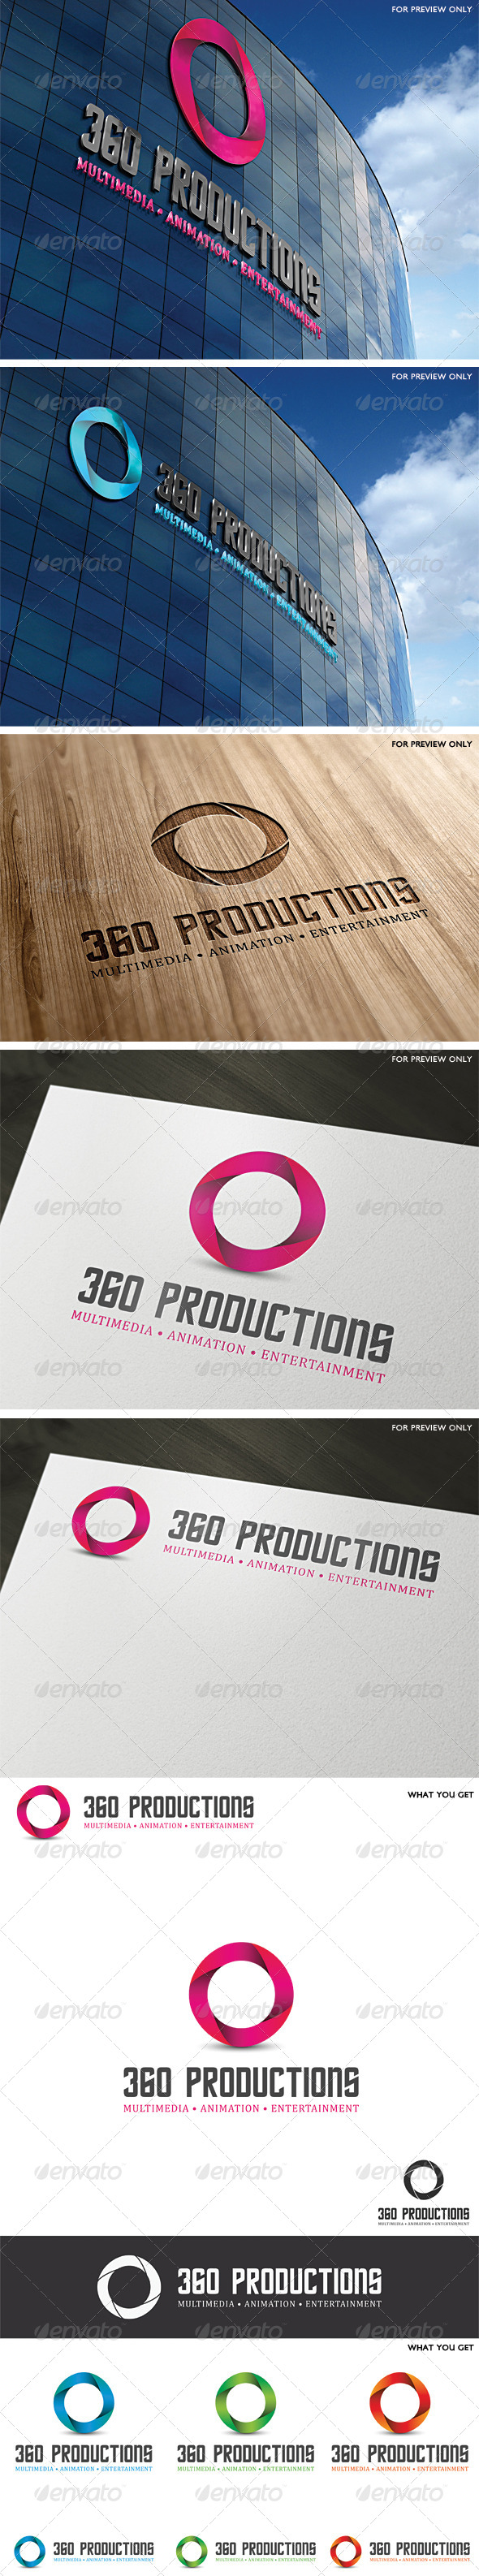 360 Productions Logo Template - Vector Abstract